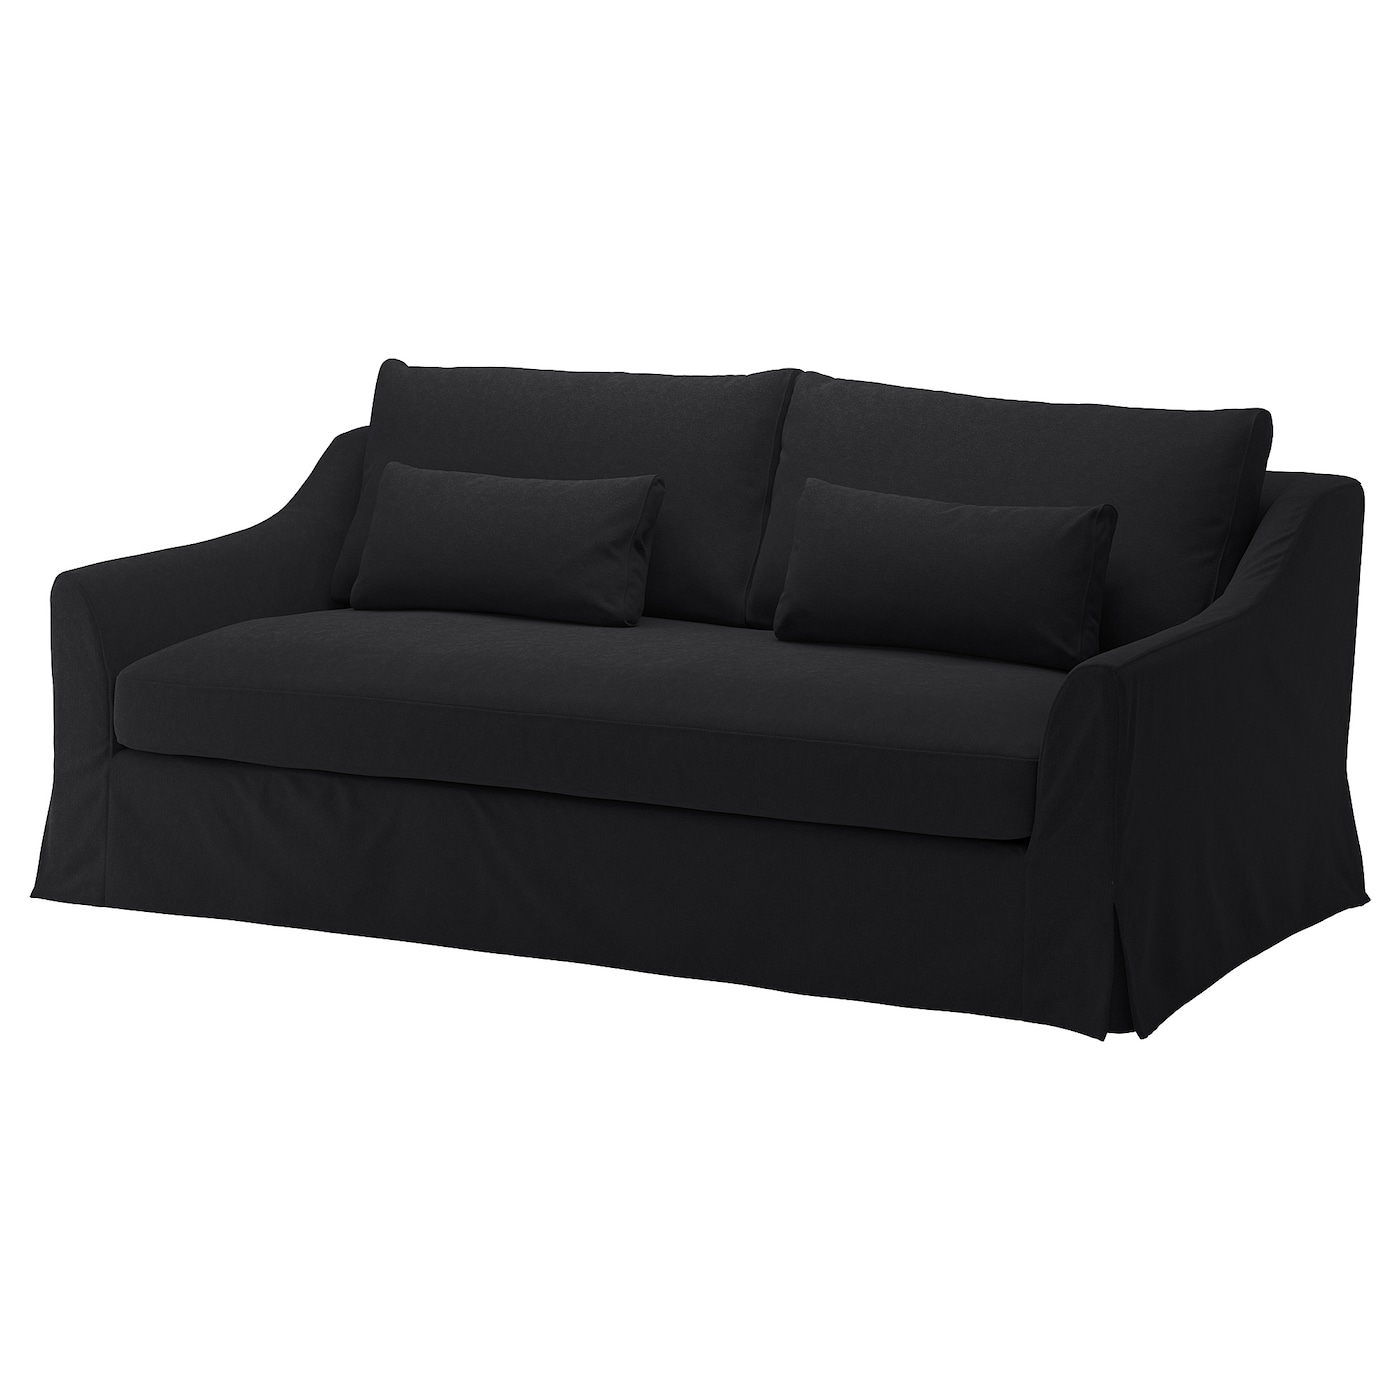 IKEA FÄRLÖV 3-seat sofa The cover is easy to keep clean as it is removable and can be dry cleaned.